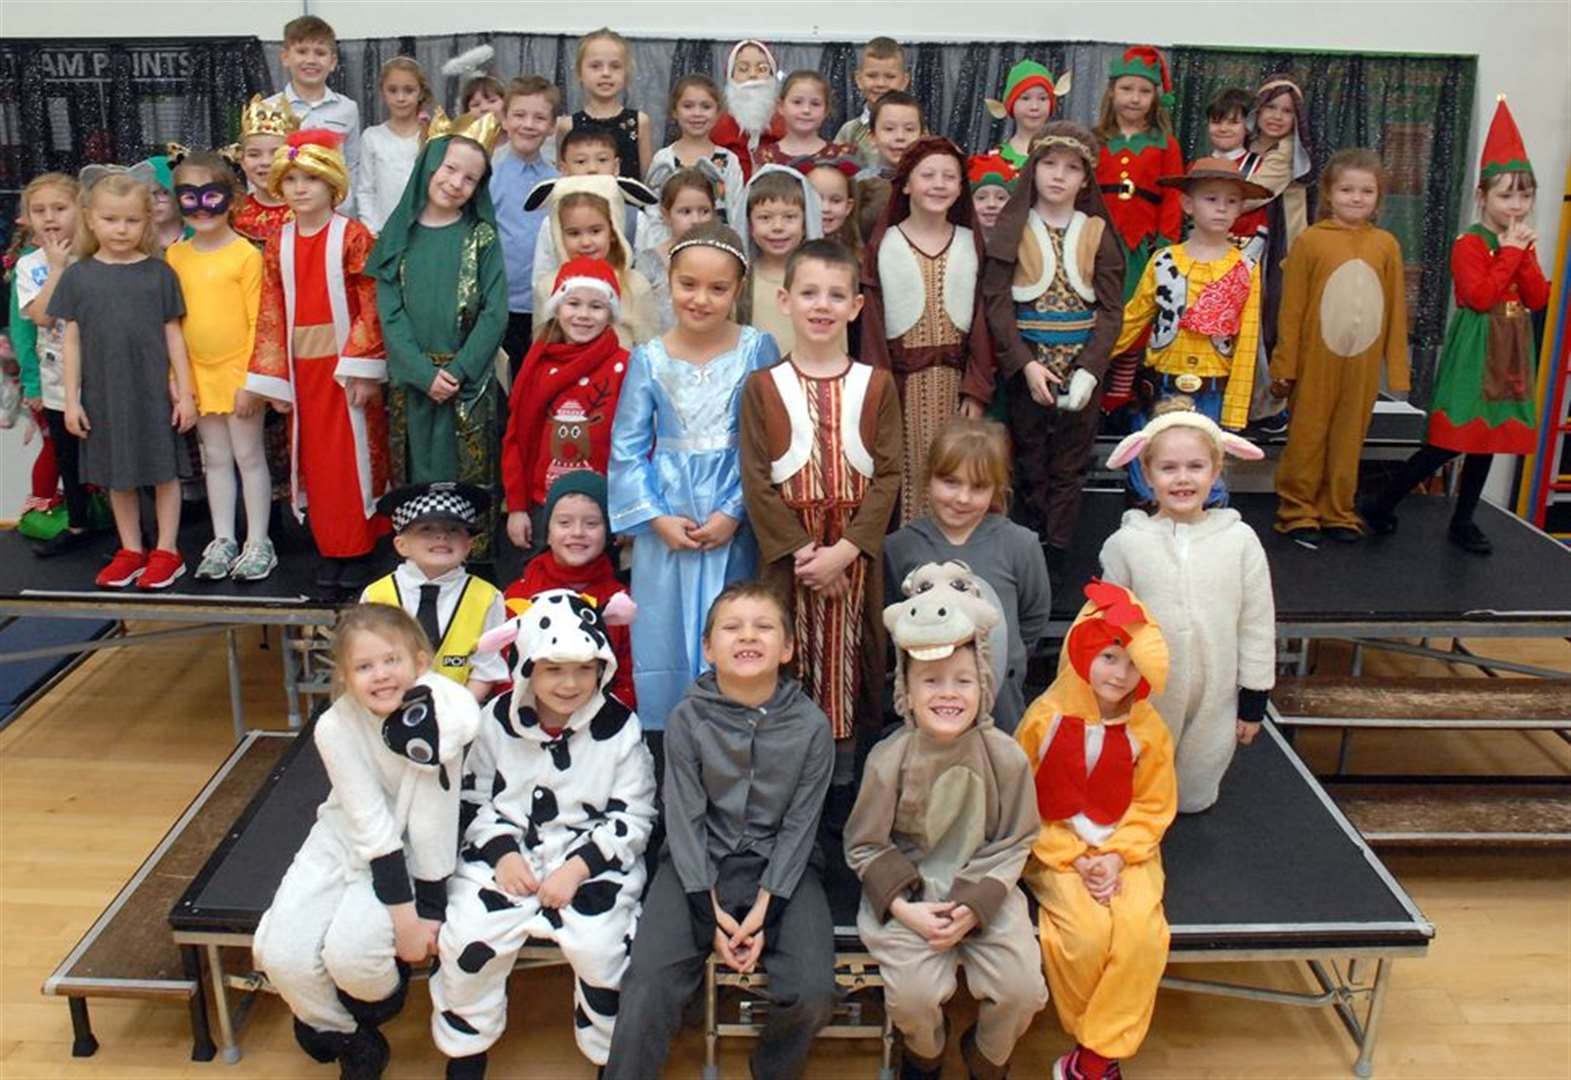 PHOTO GALLERY: Christmas story goes 'higgledy-piggledy' at town school